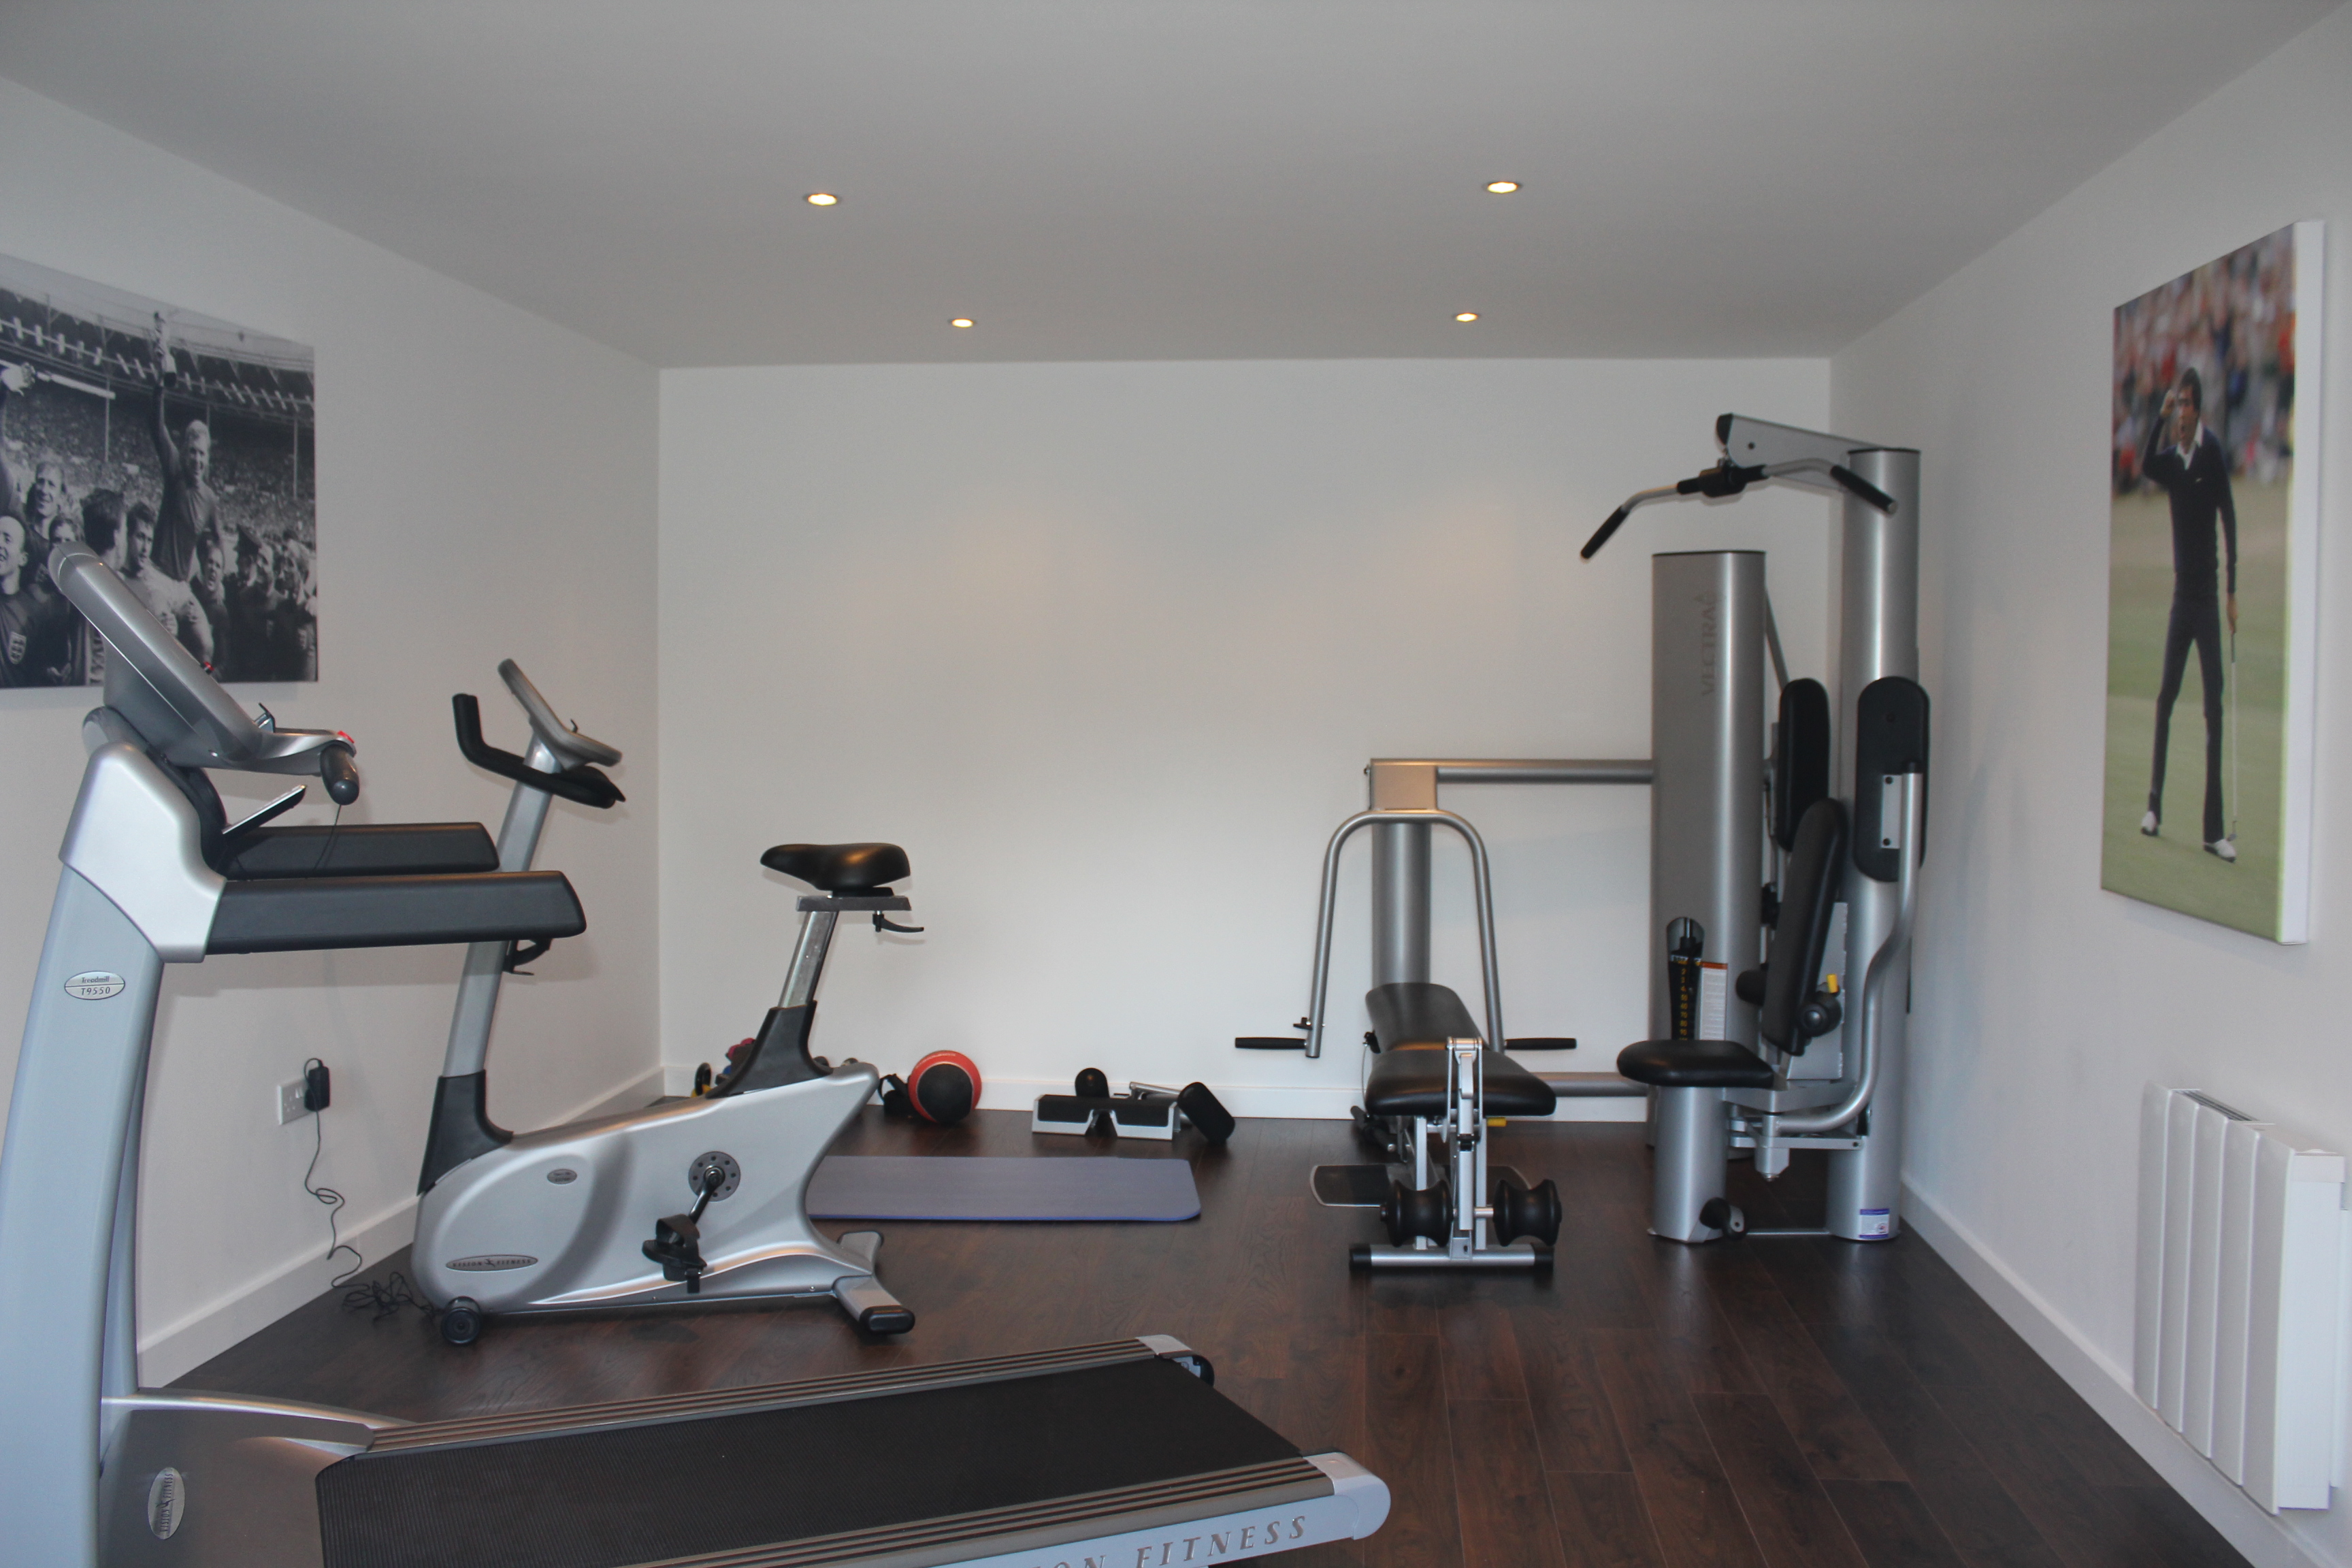 Garage conversion bolton room ideas Living room gym